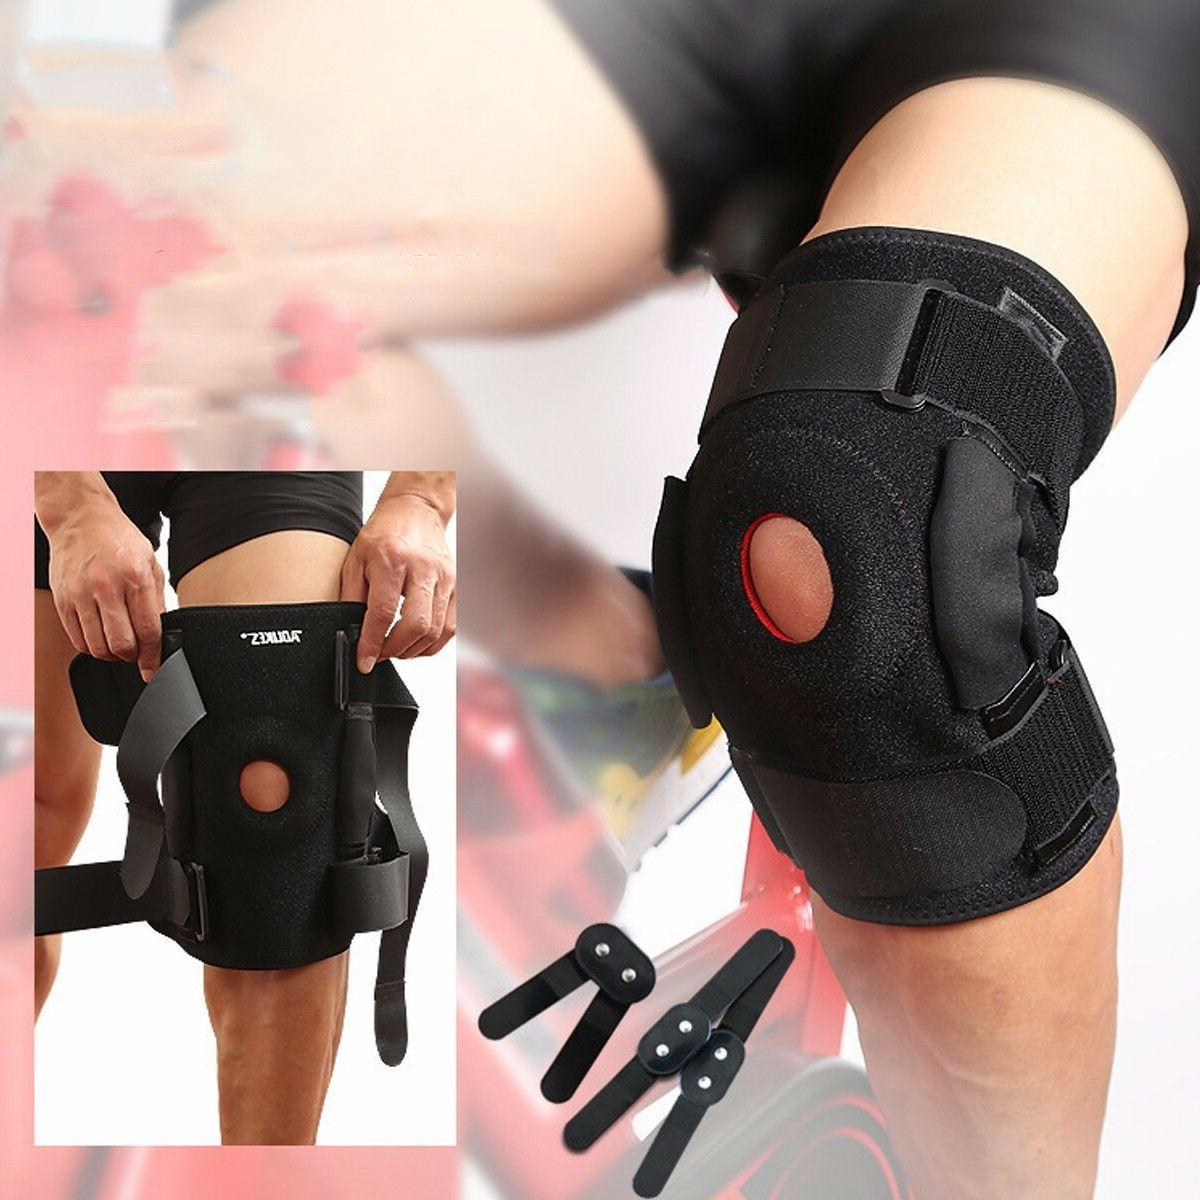 hinged knee brace adjustable open patella support